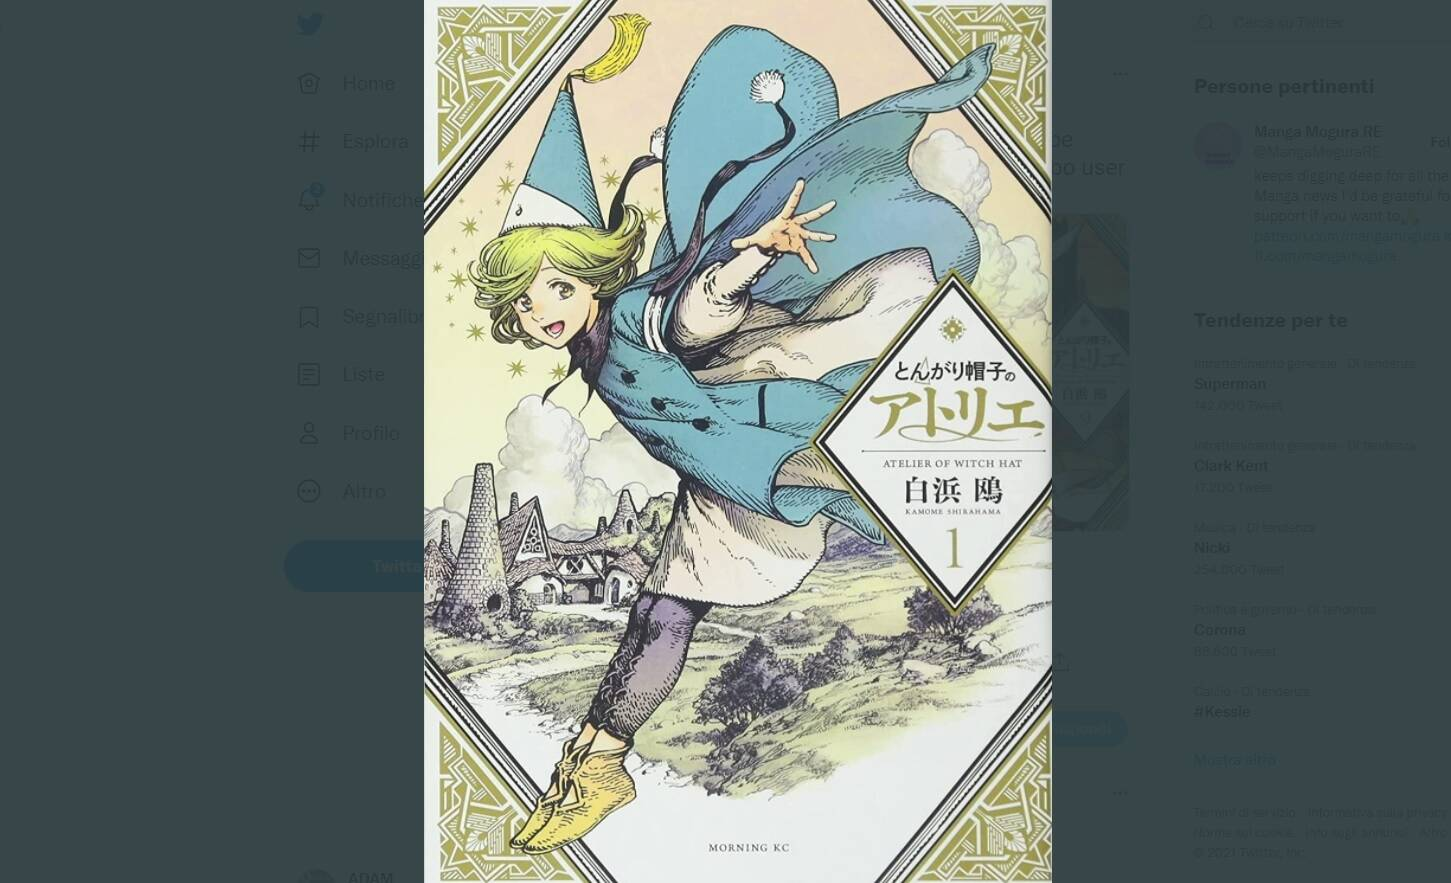 atelier of witch hat anime